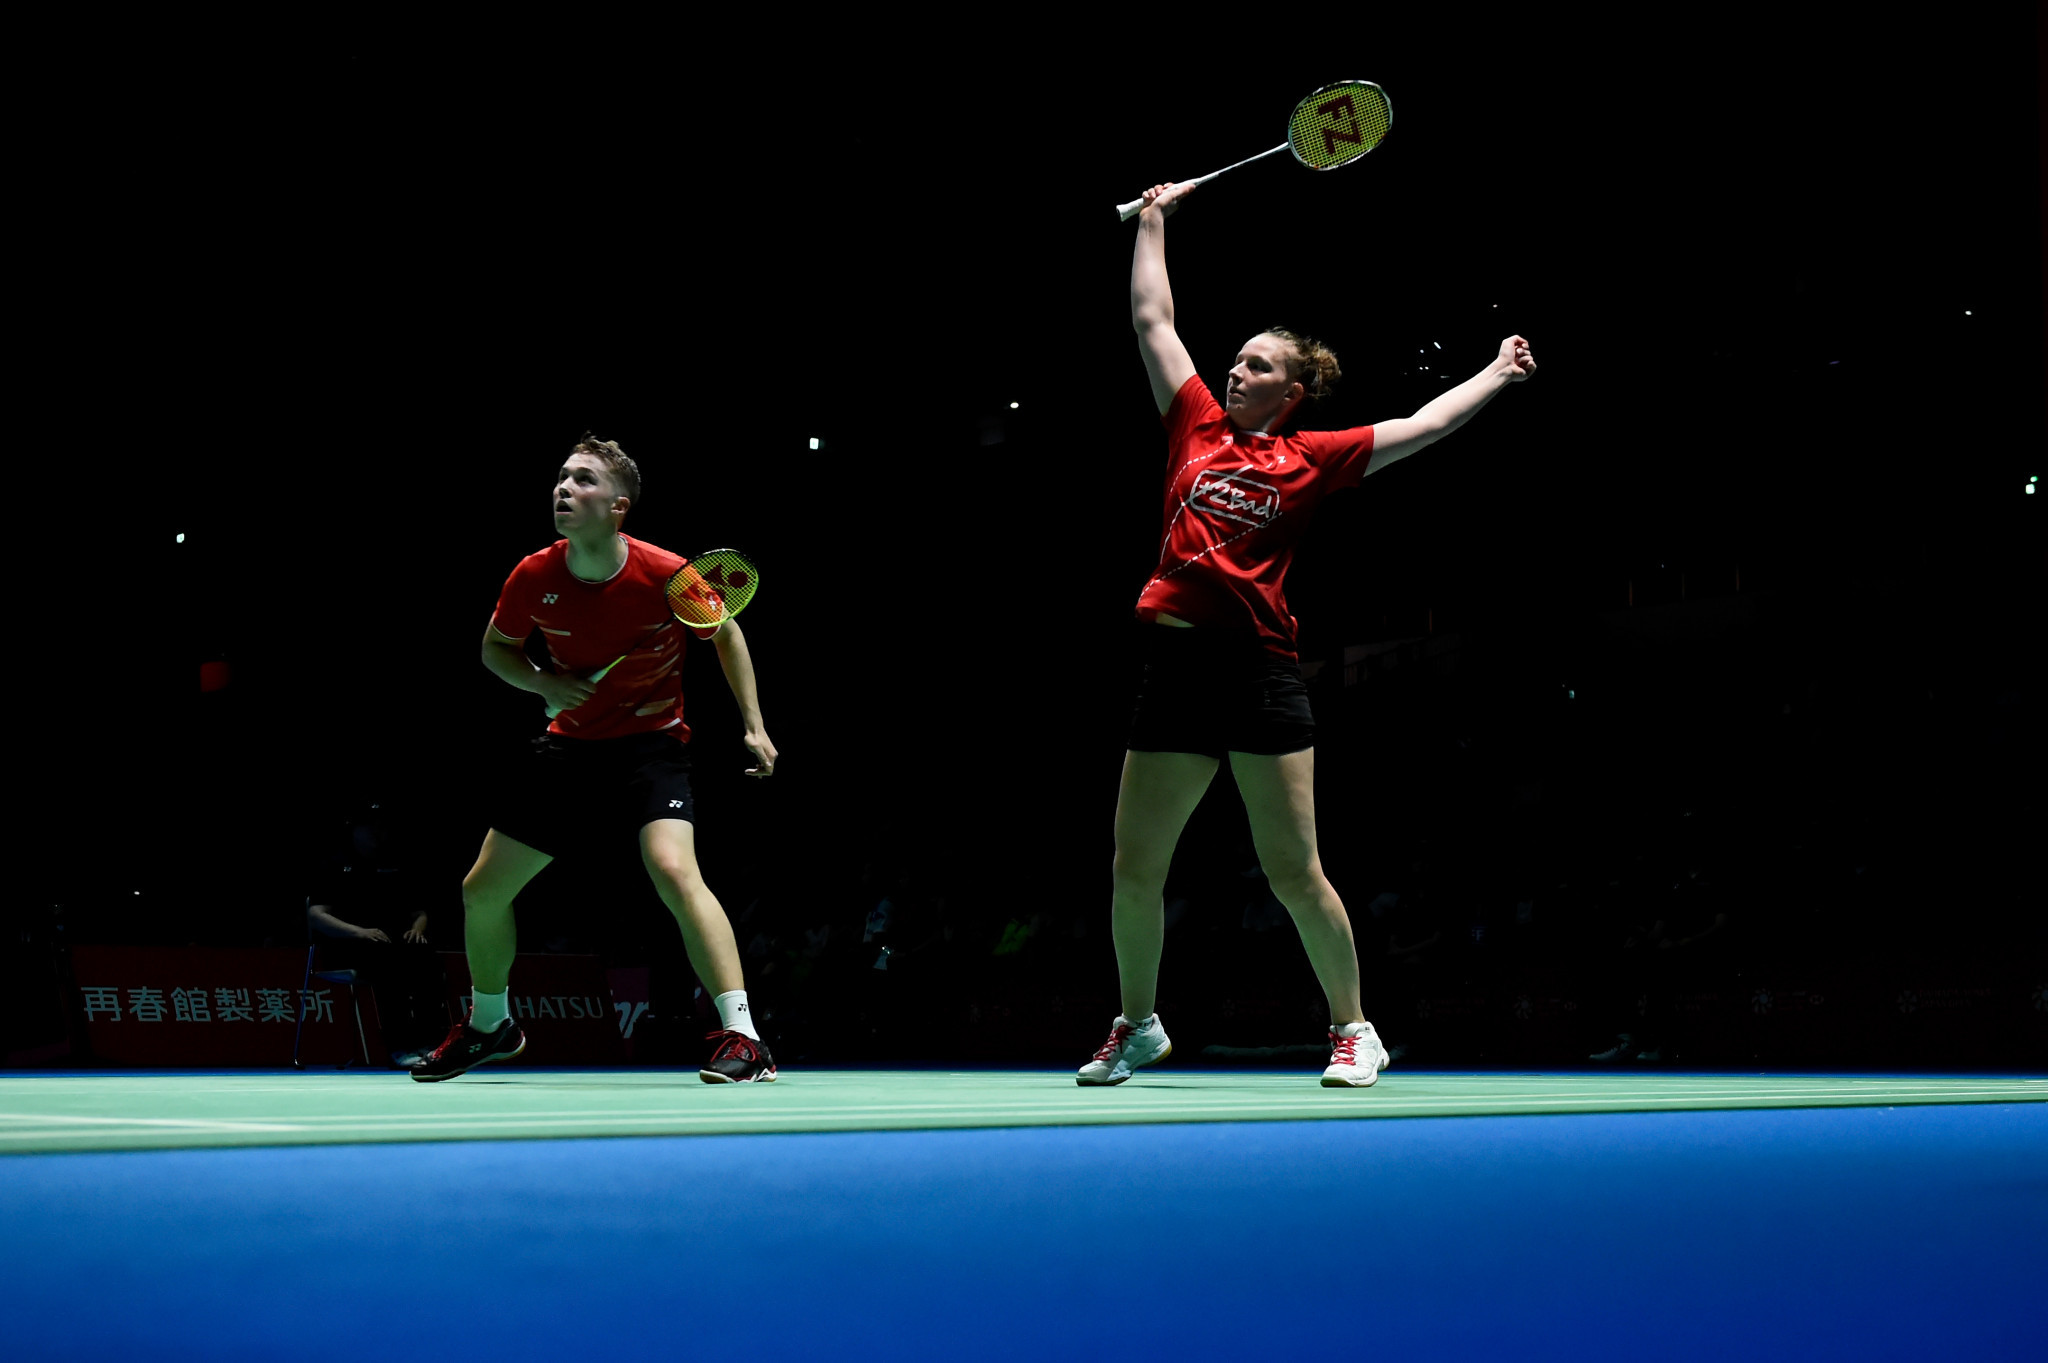 France and Denmark claim wins in deciding matches at European Mixed Team Badminton Championships